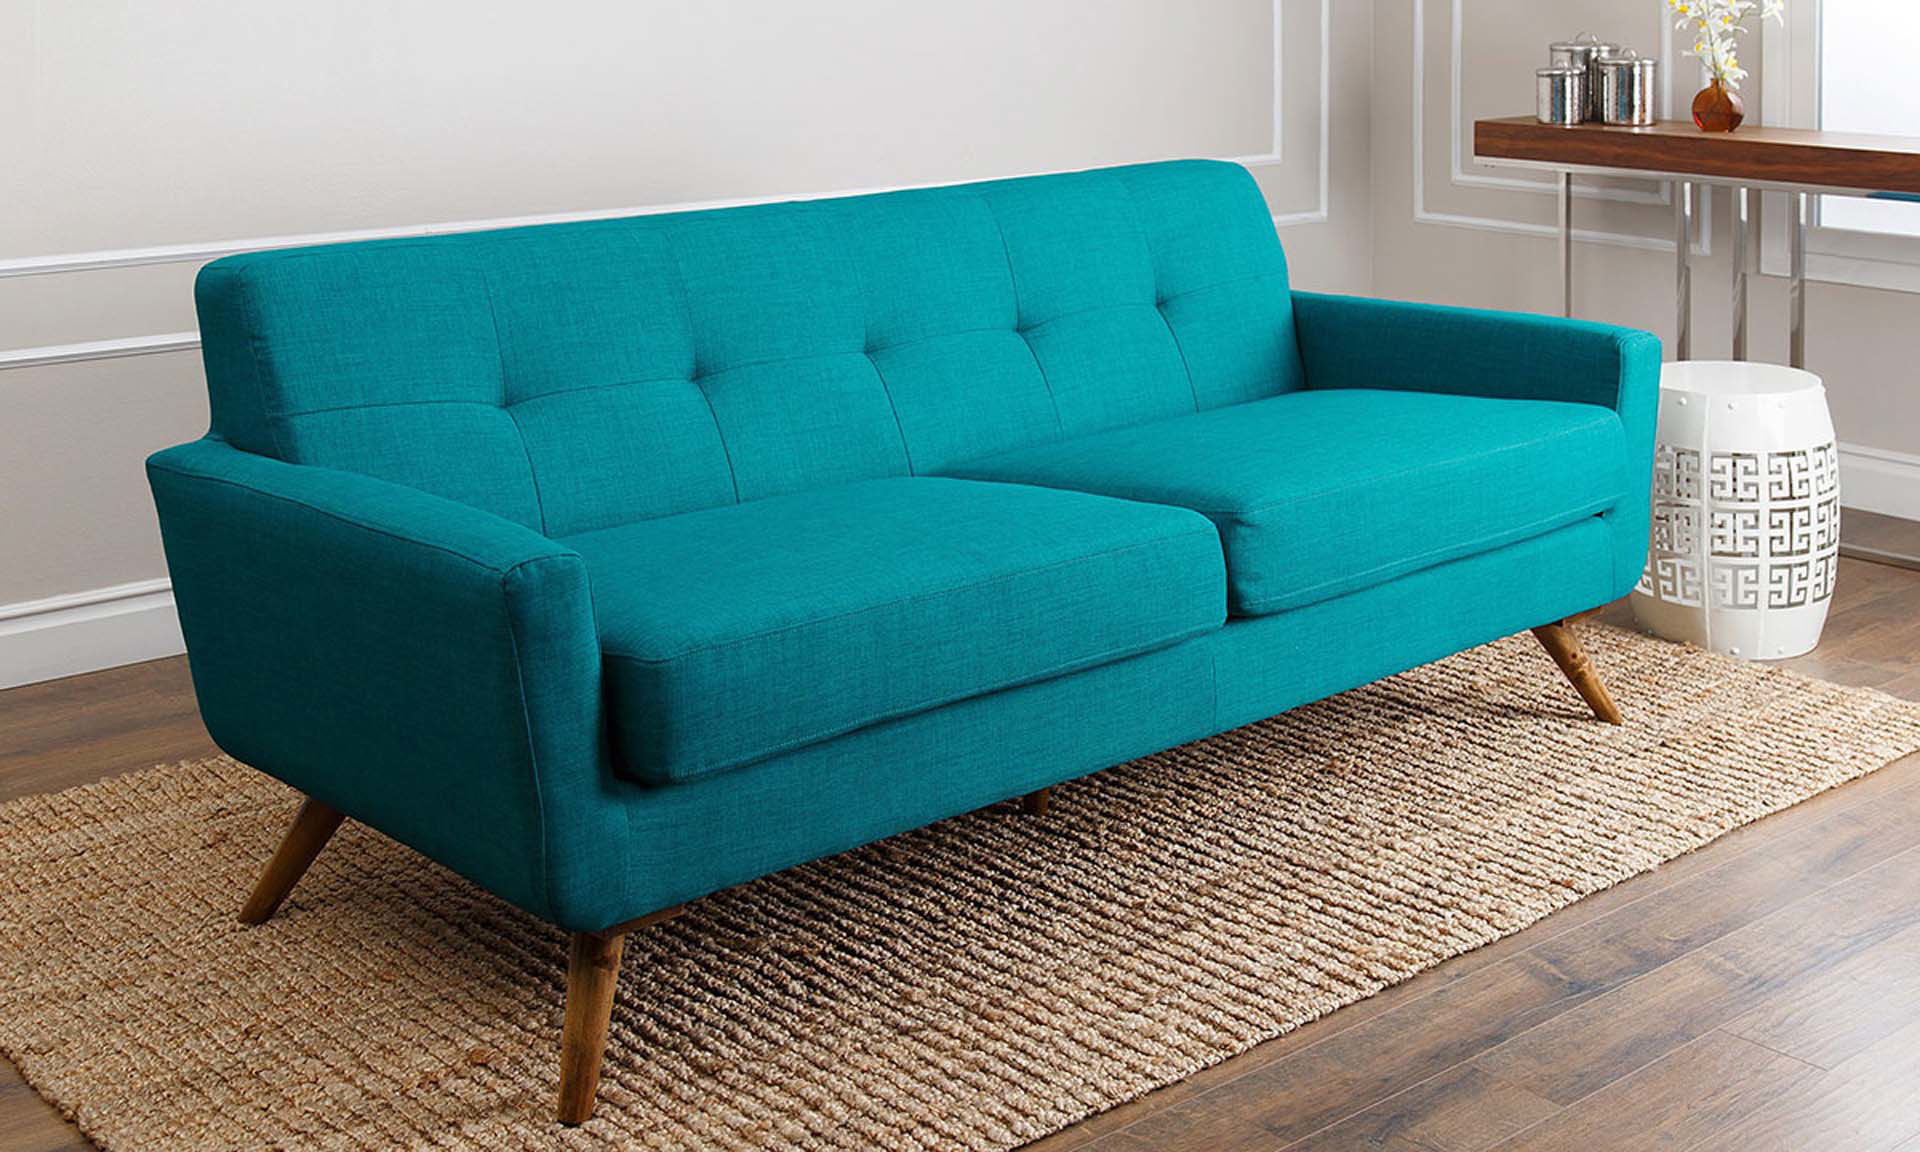 Mid-century modern sofa in teal upholstery with wood legs on tan rug